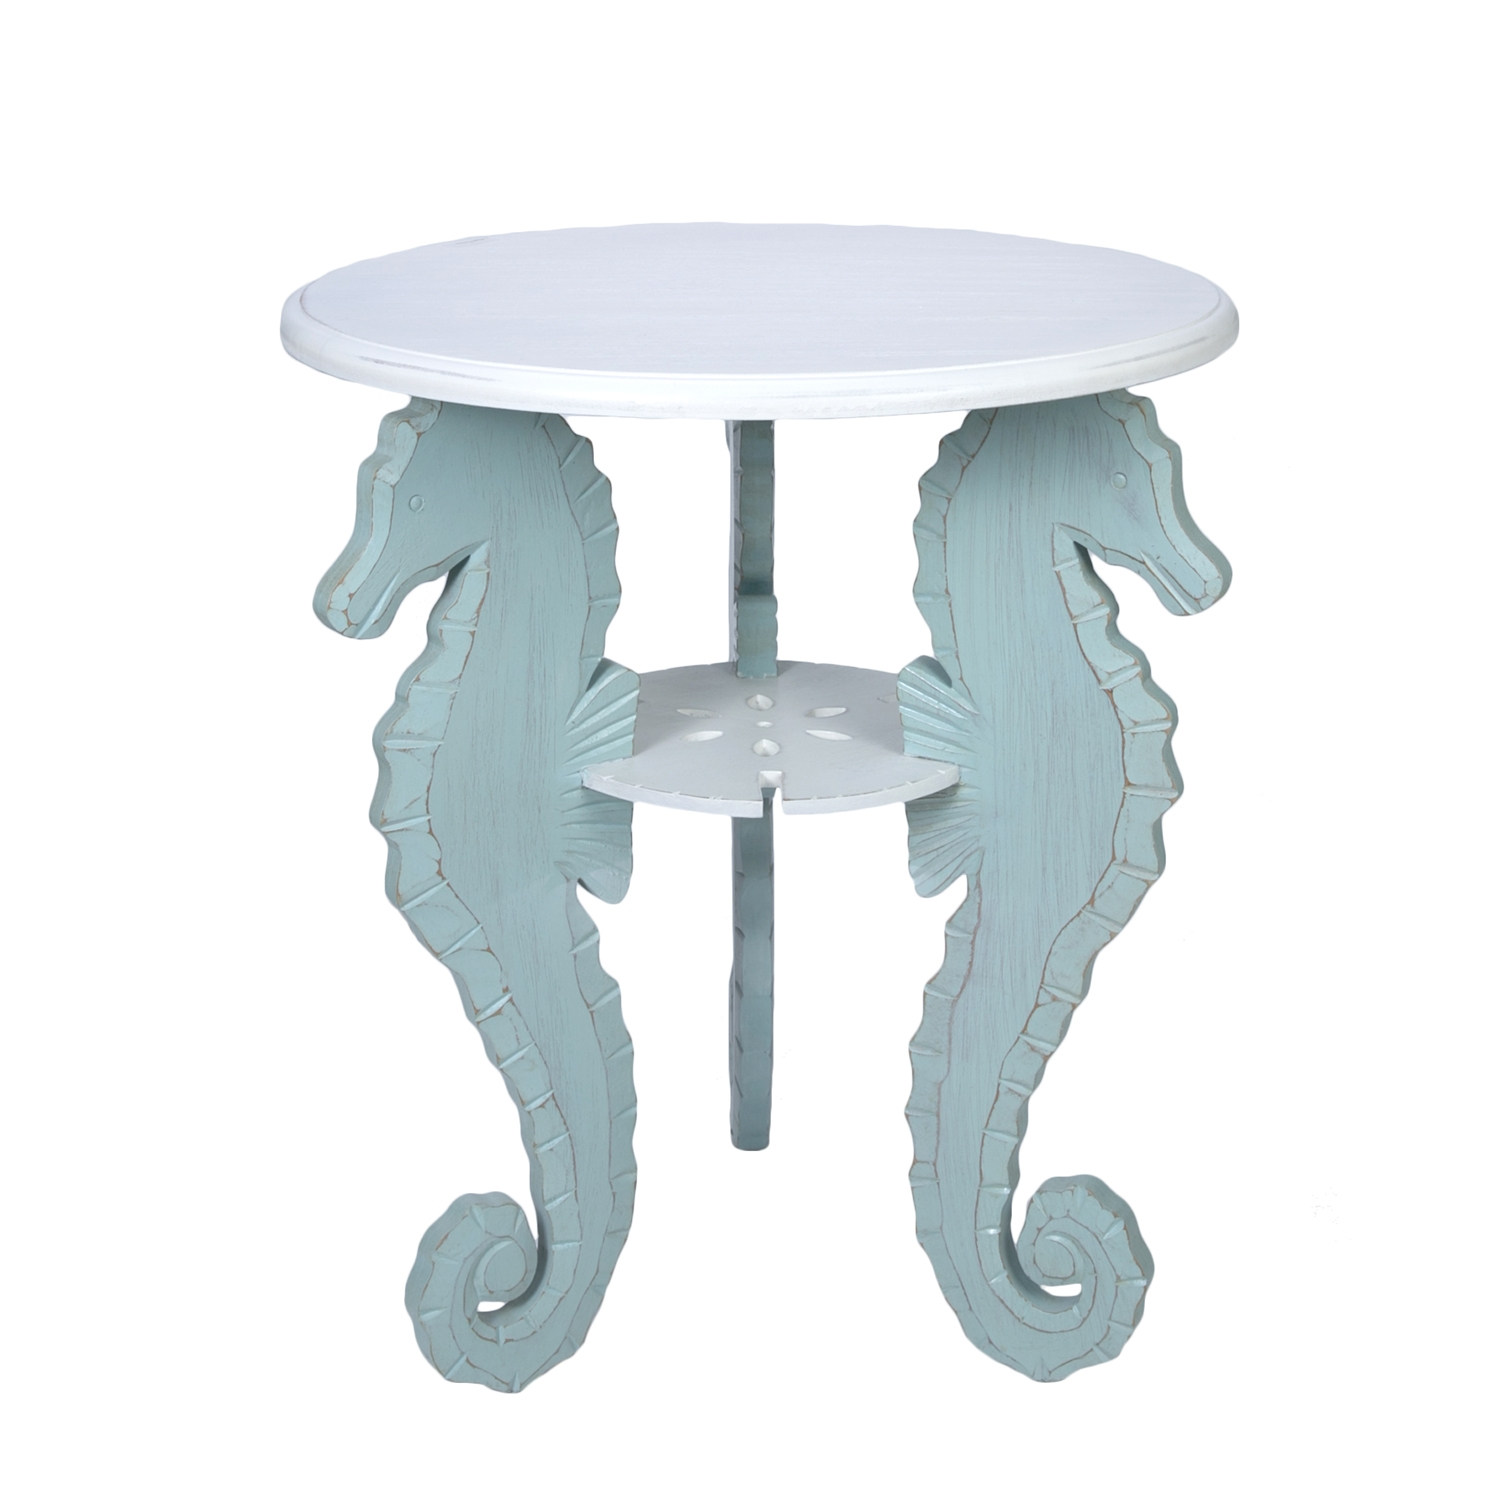 Small Round Seahorse Table